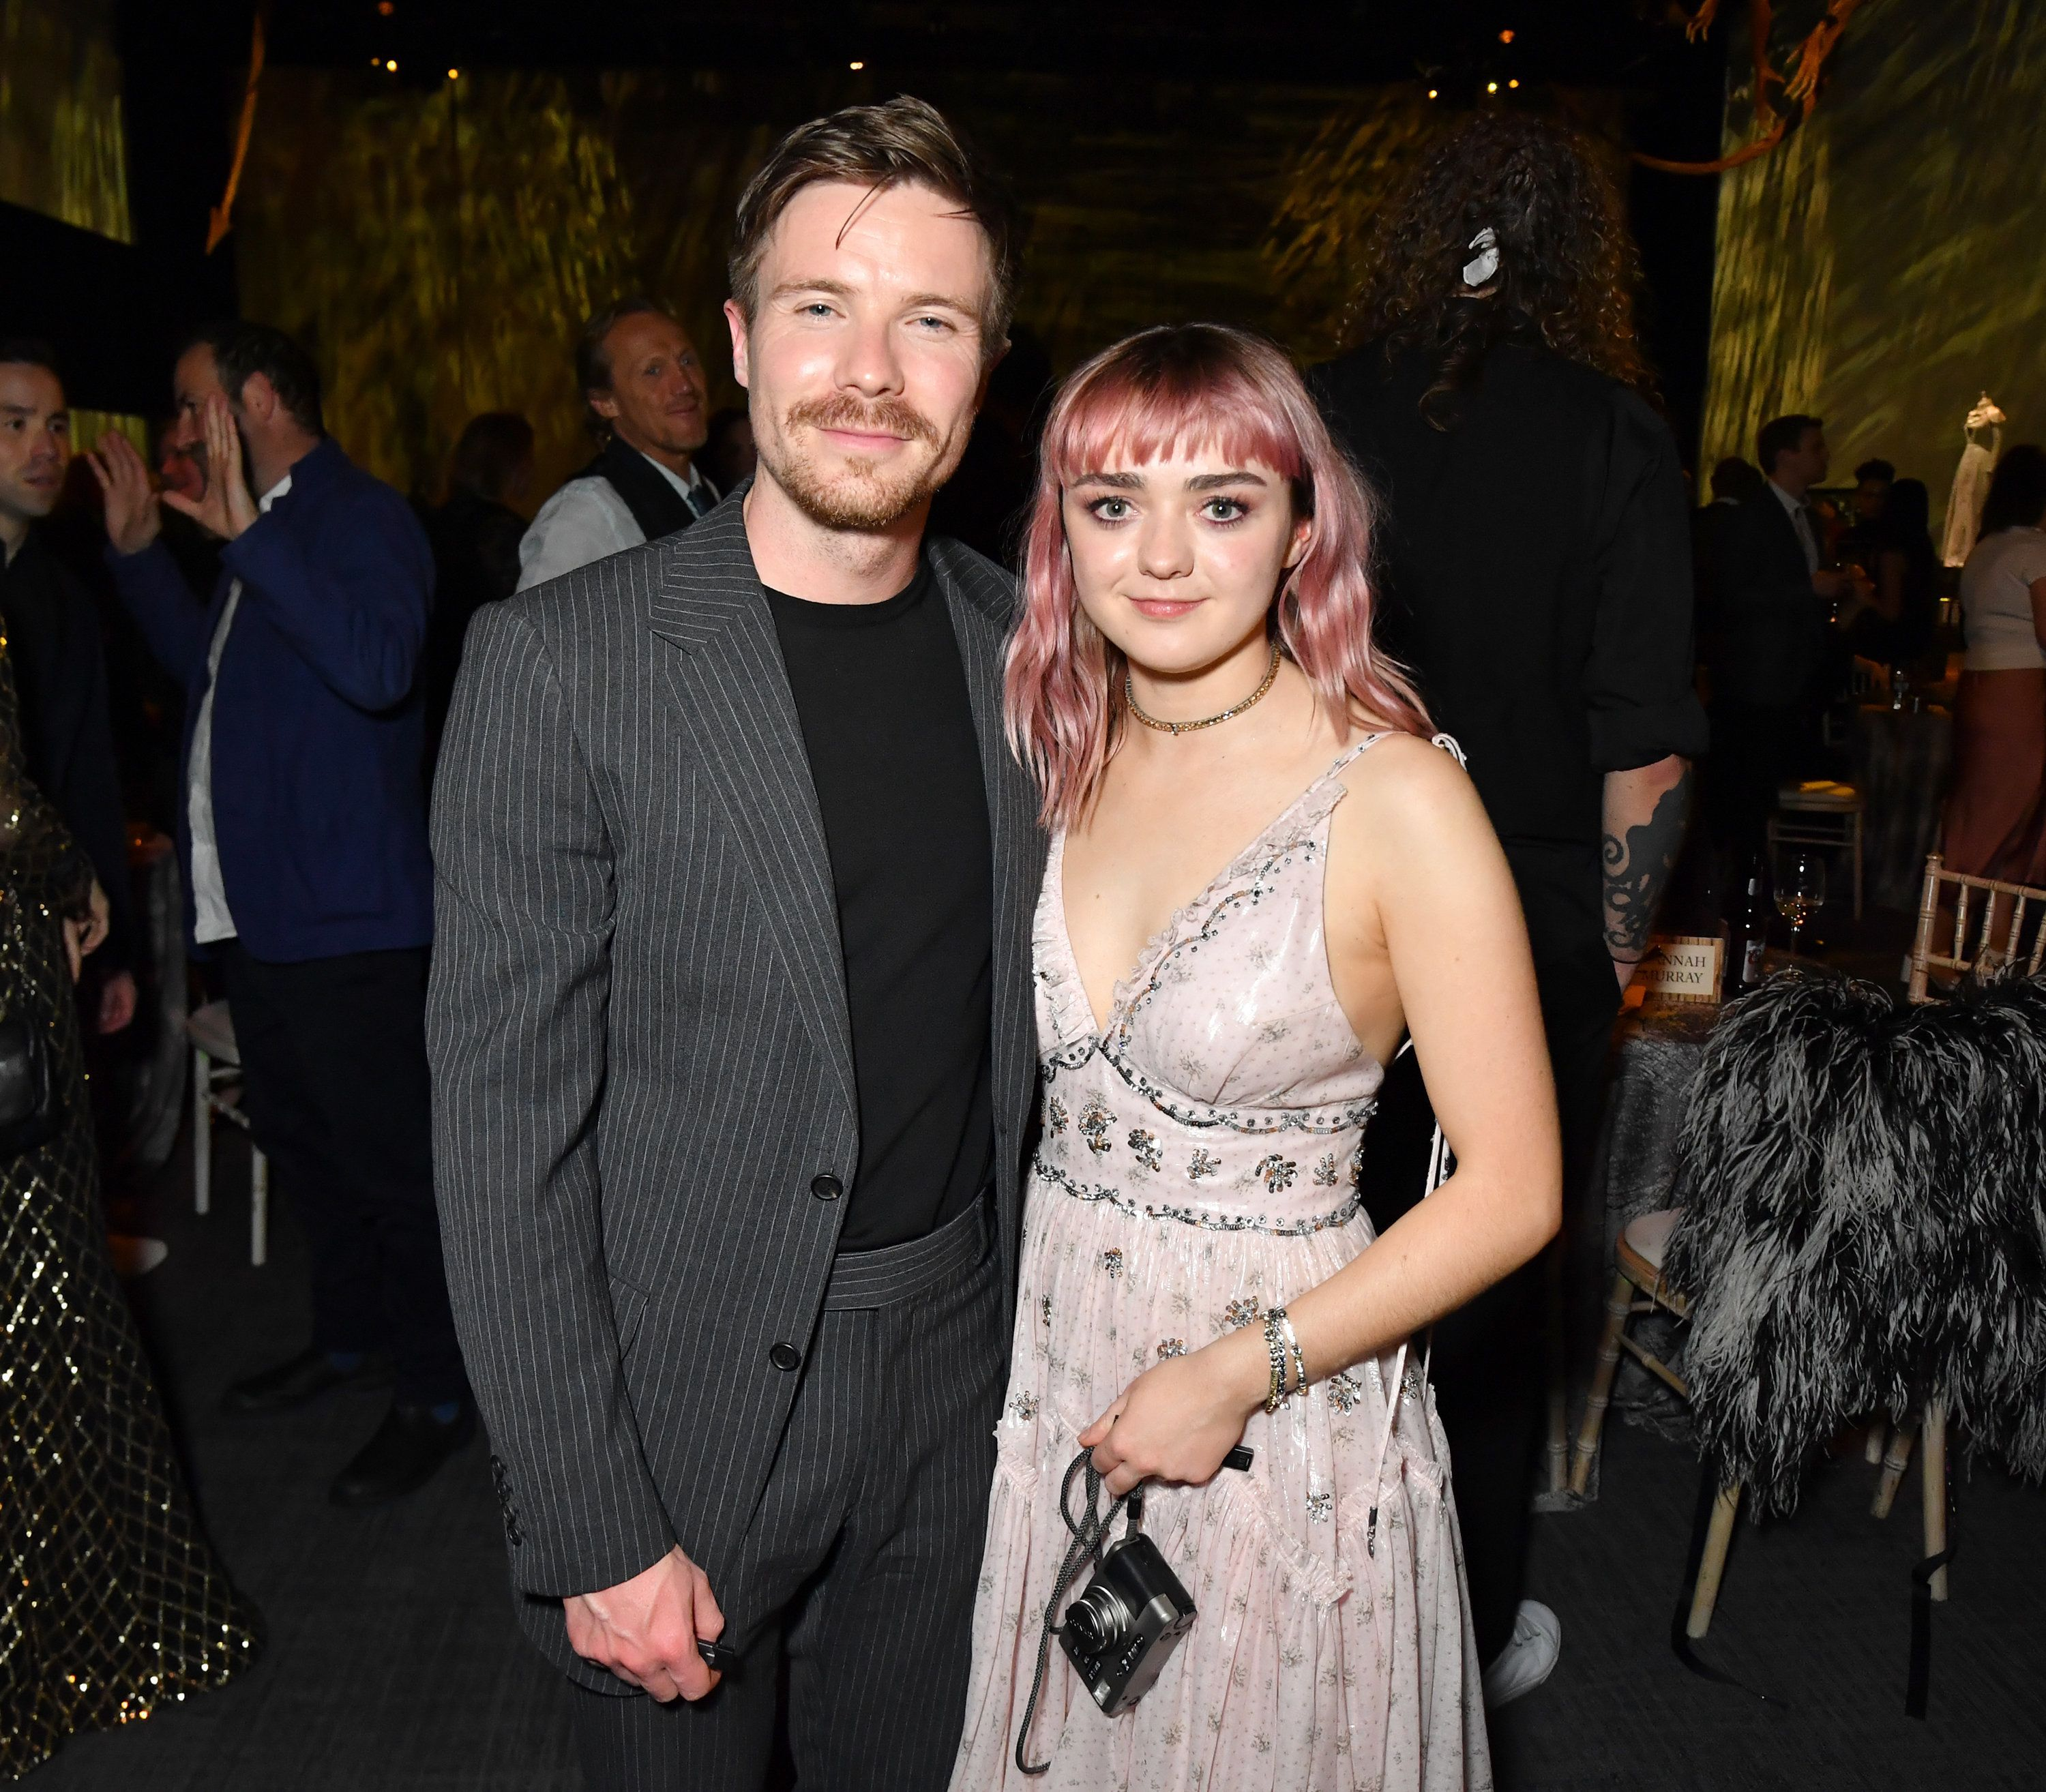 Maisie Williams Thought THAT 'Game Of Thrones' Scene With Gendry Was A